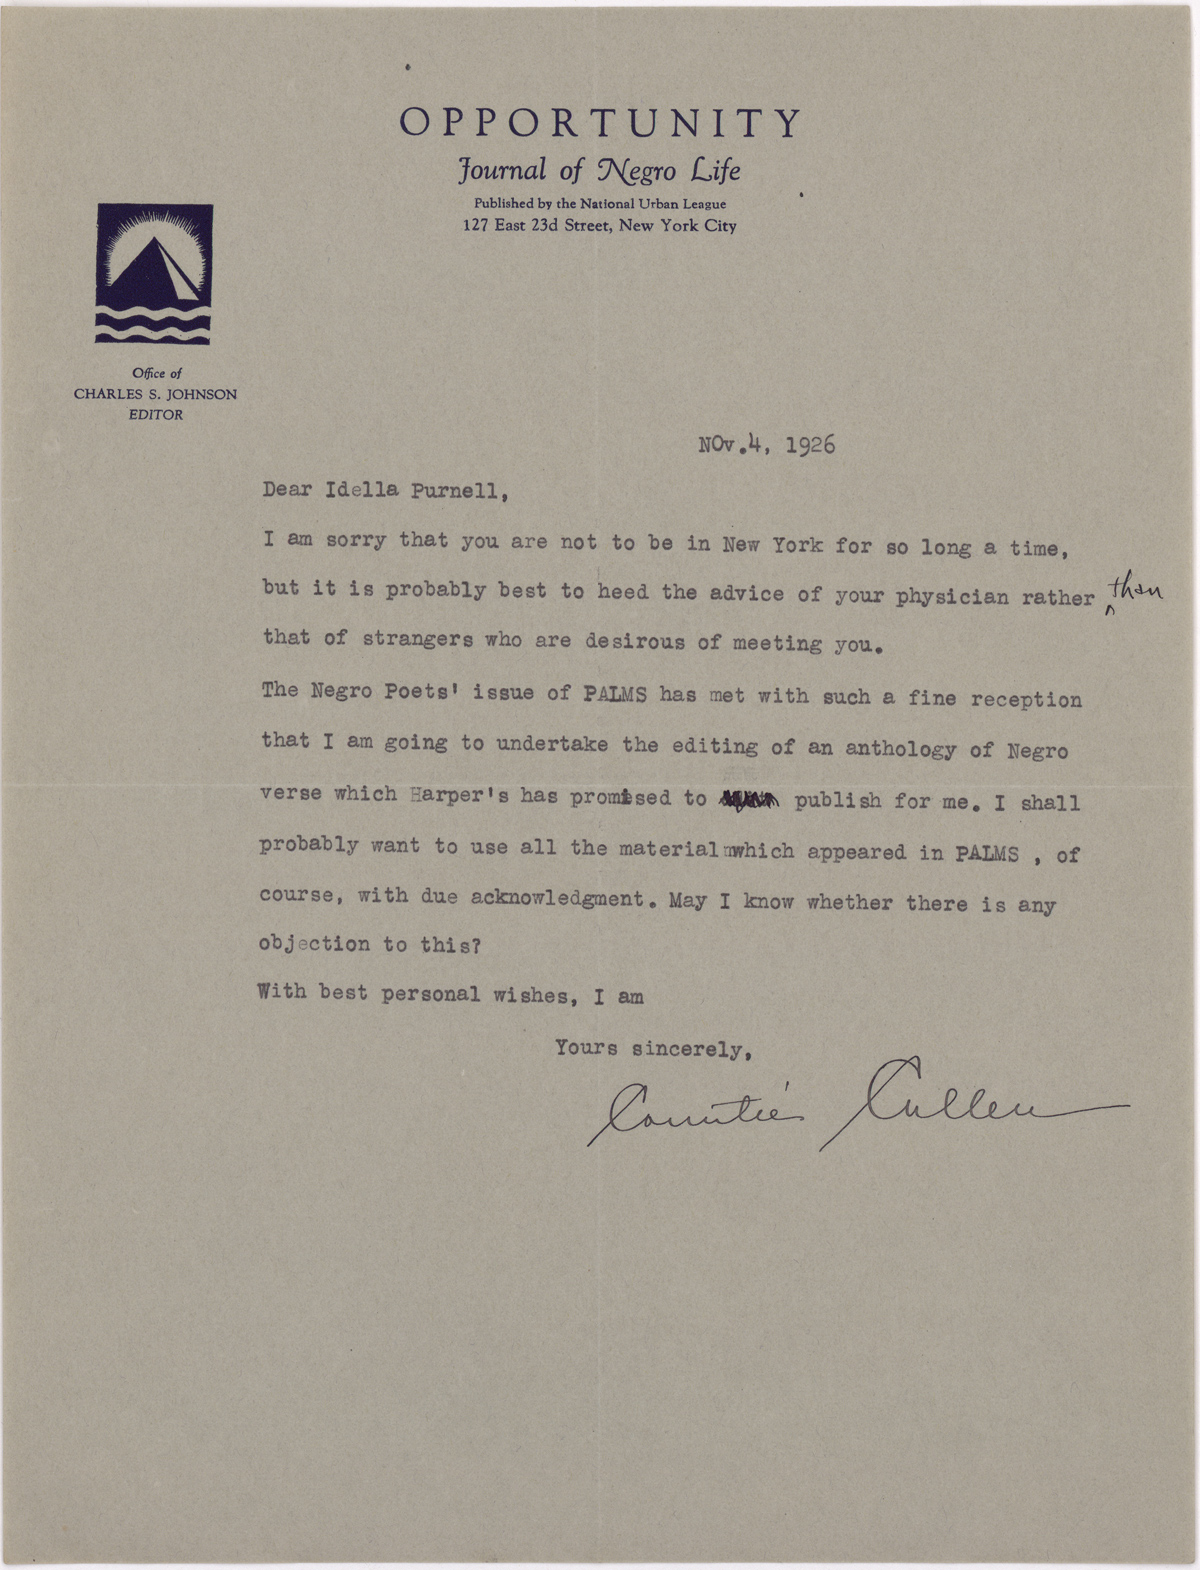 "Countée Cullen's November 4, 1926, letter to Palms editor Idella Purnell, in which he mentions his plan to publish an ""anthology of Negro verse"" for Harper's."